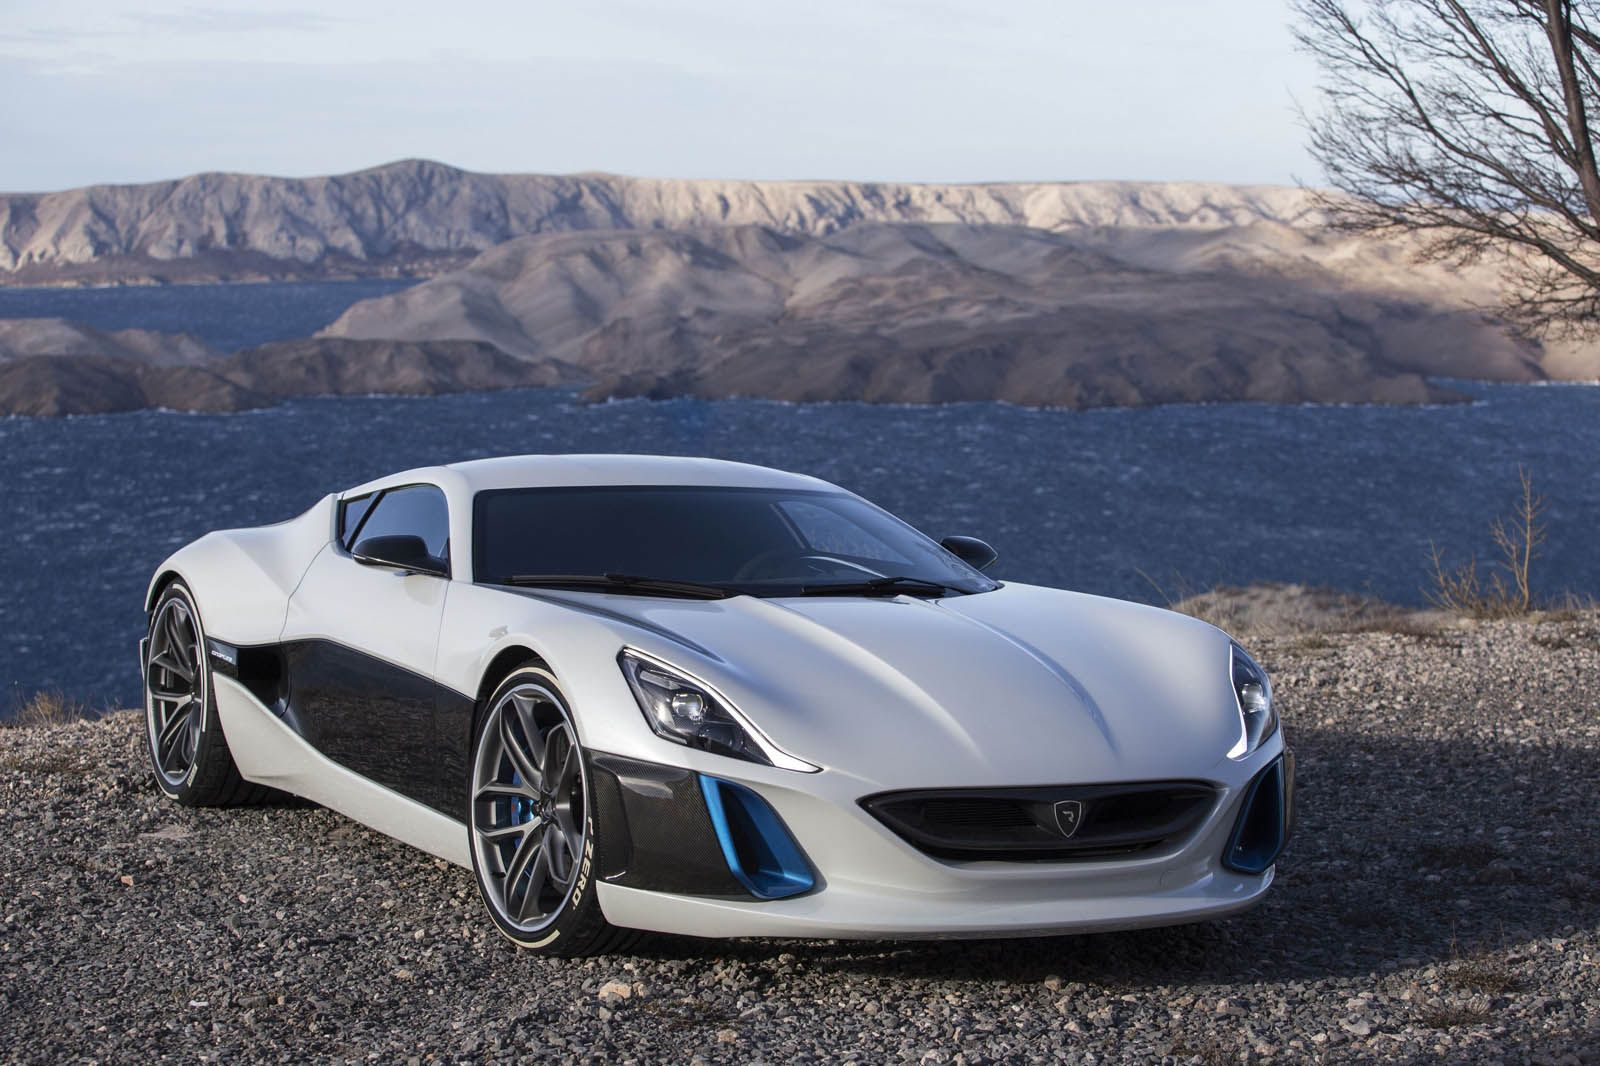 Rimac Upgrades Concept One Electric Supercar To Take On The World Hybrid Car Luxury Hybrid Cars Super Cars